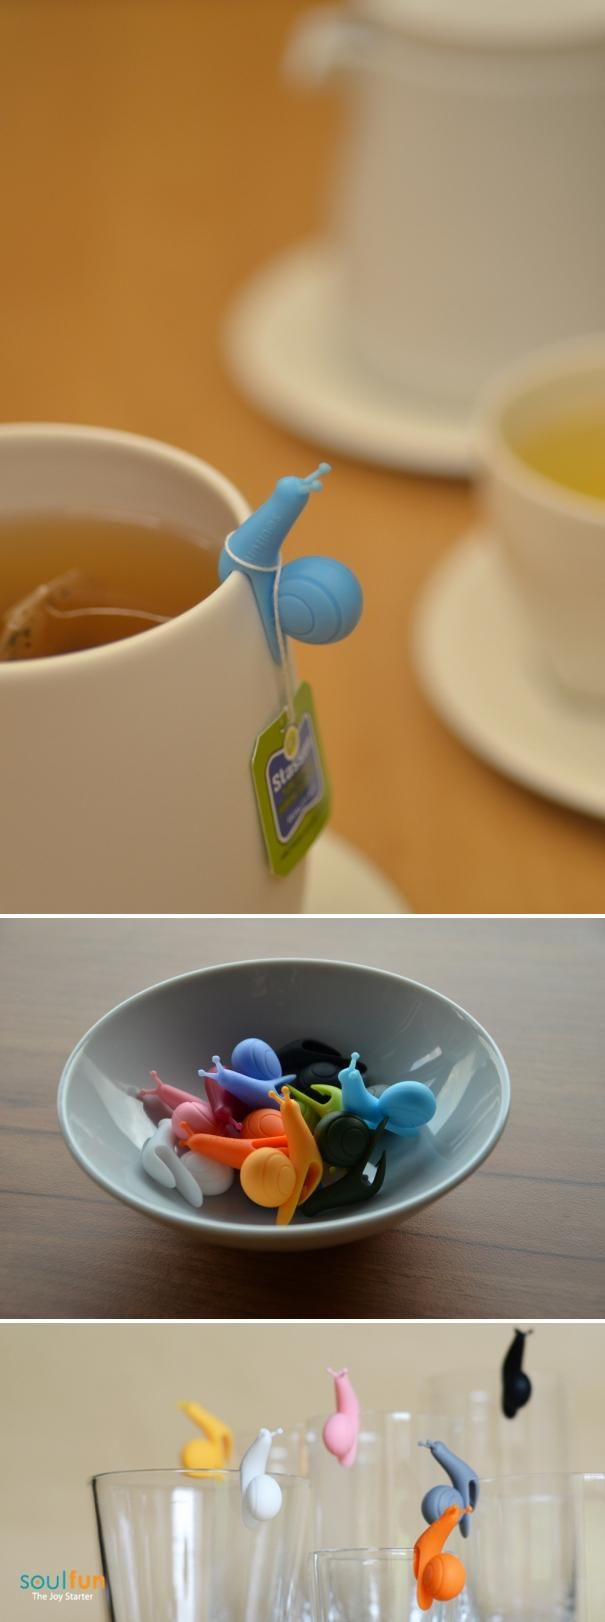 Snail tea bag holders // @Chrystal von Ward von Ward von Ward von Ward von Ward von Ward Johnson